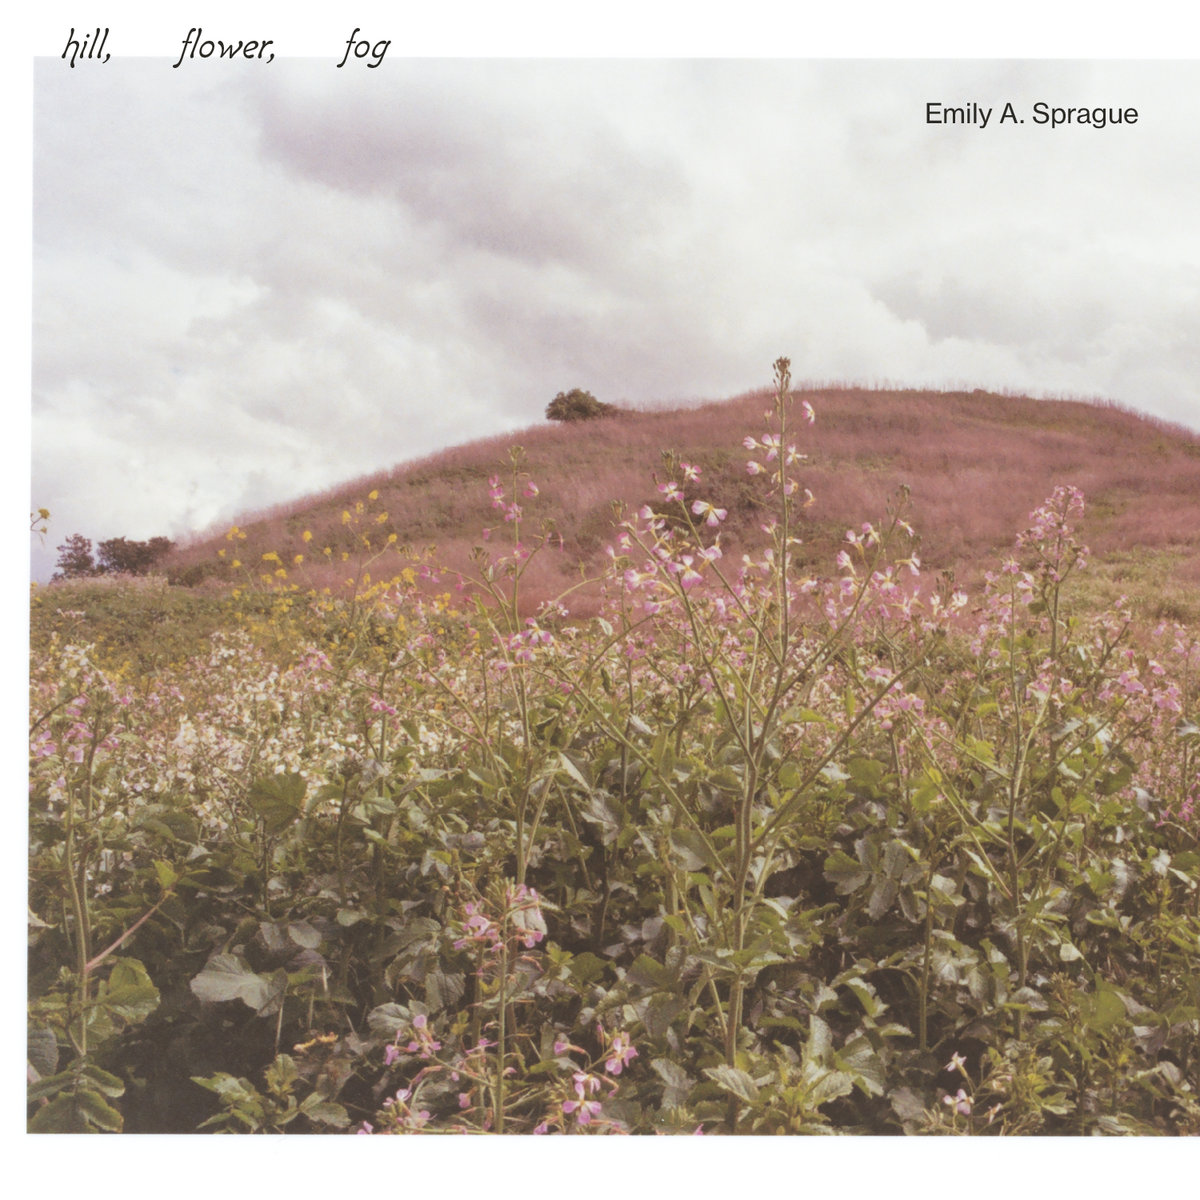 The cover of the album Hill, Flower, Fog by Emily A. Sprague. A green hill is pictured, loosely covered in small purple flowering plants, with an overcast cloudy sky.